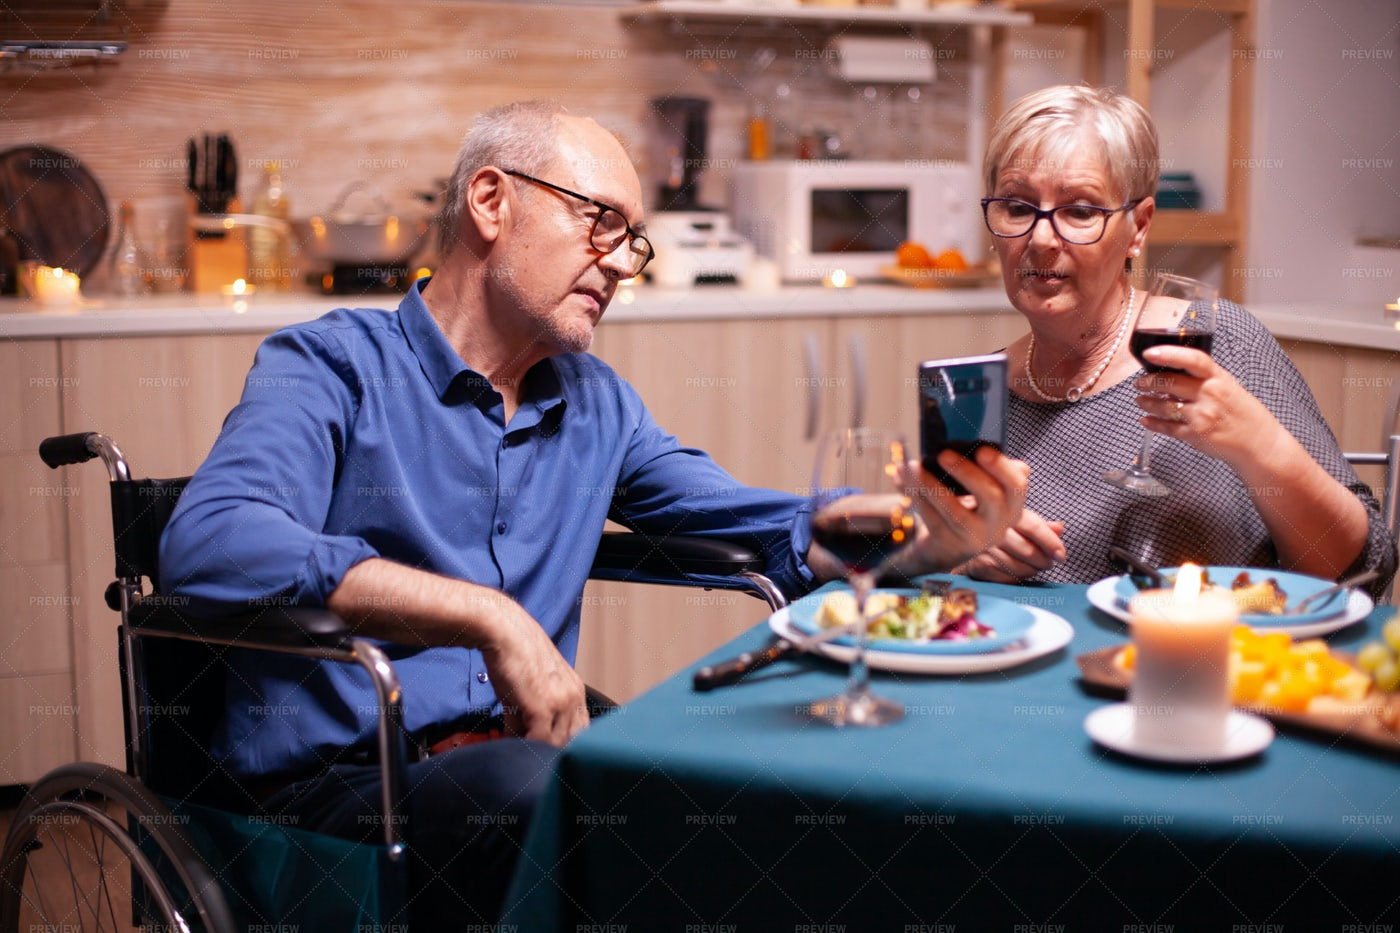 Showing His Smartphone At Dinner: Stock Photos